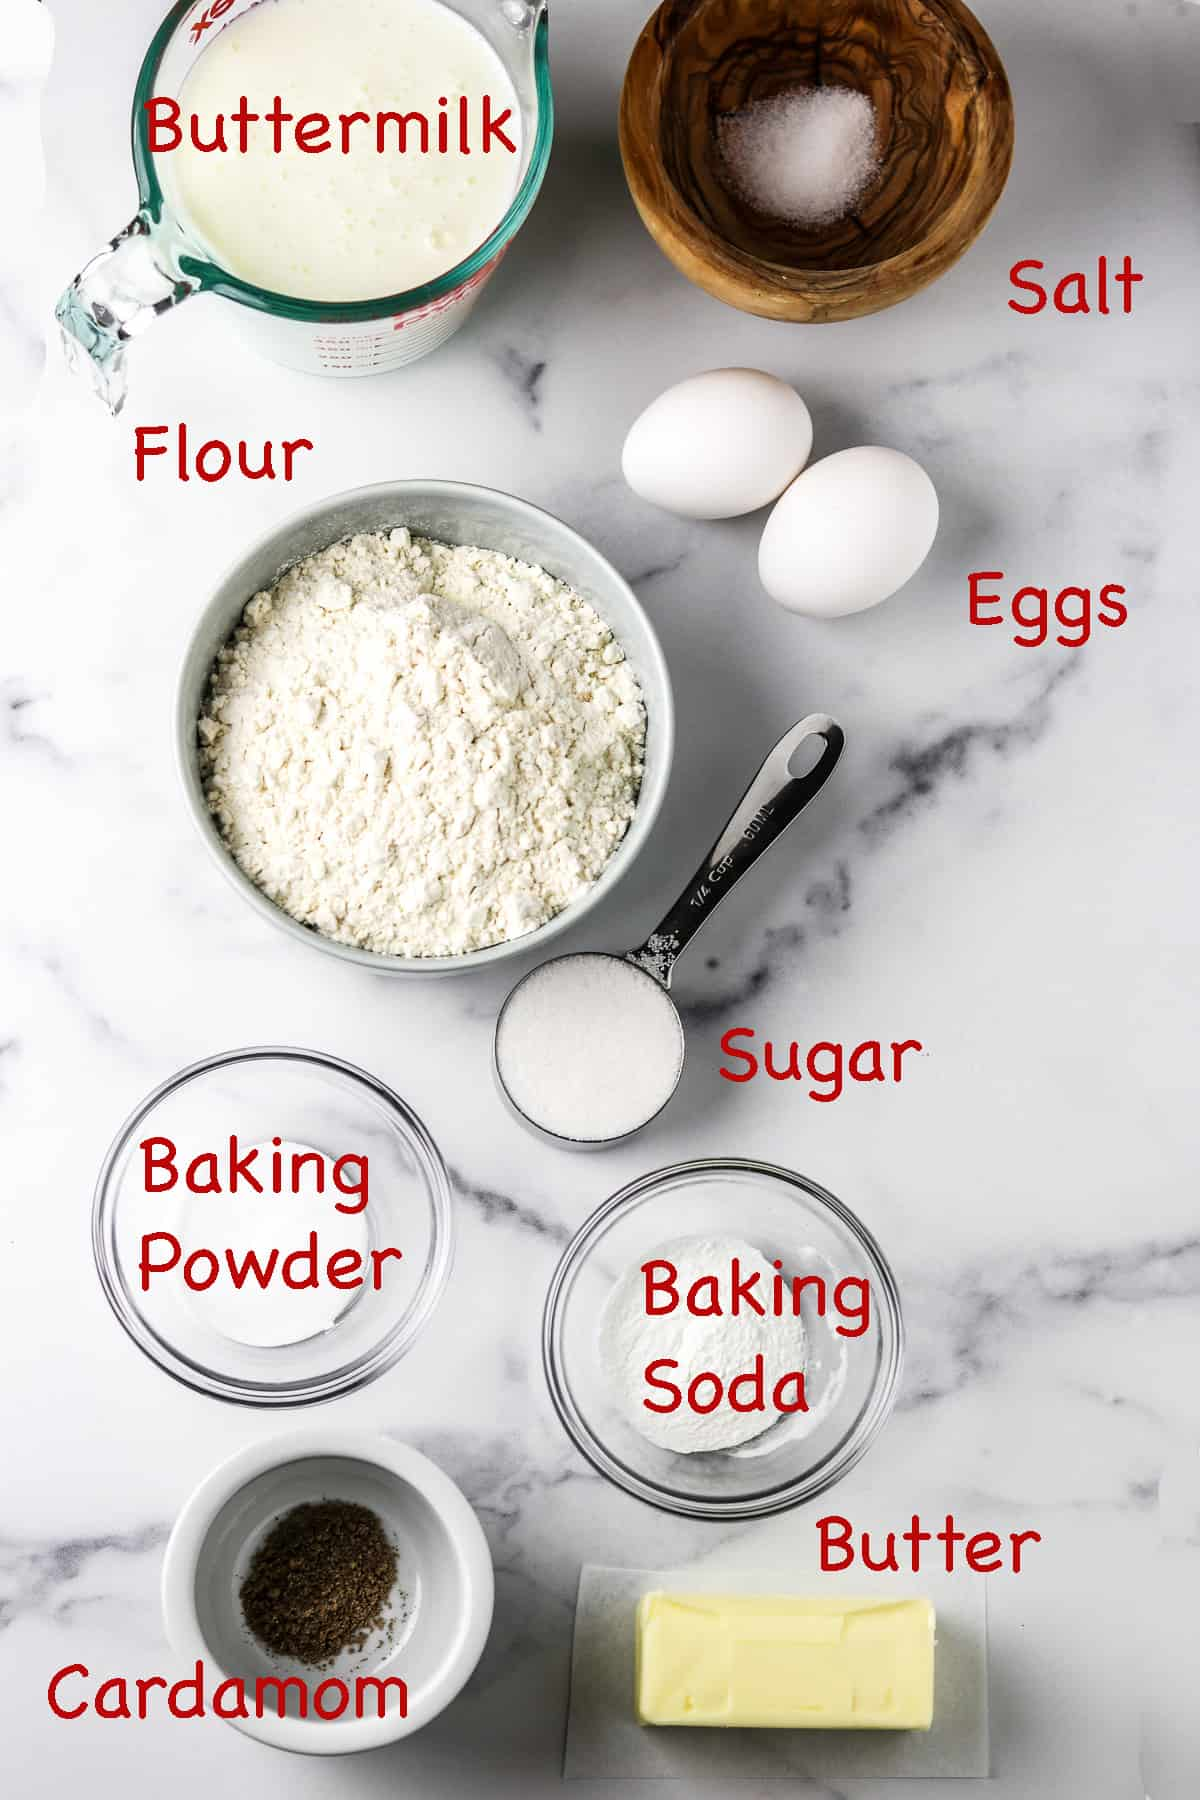 Labeled ingredients for Nordic Buttermilk Waffles.